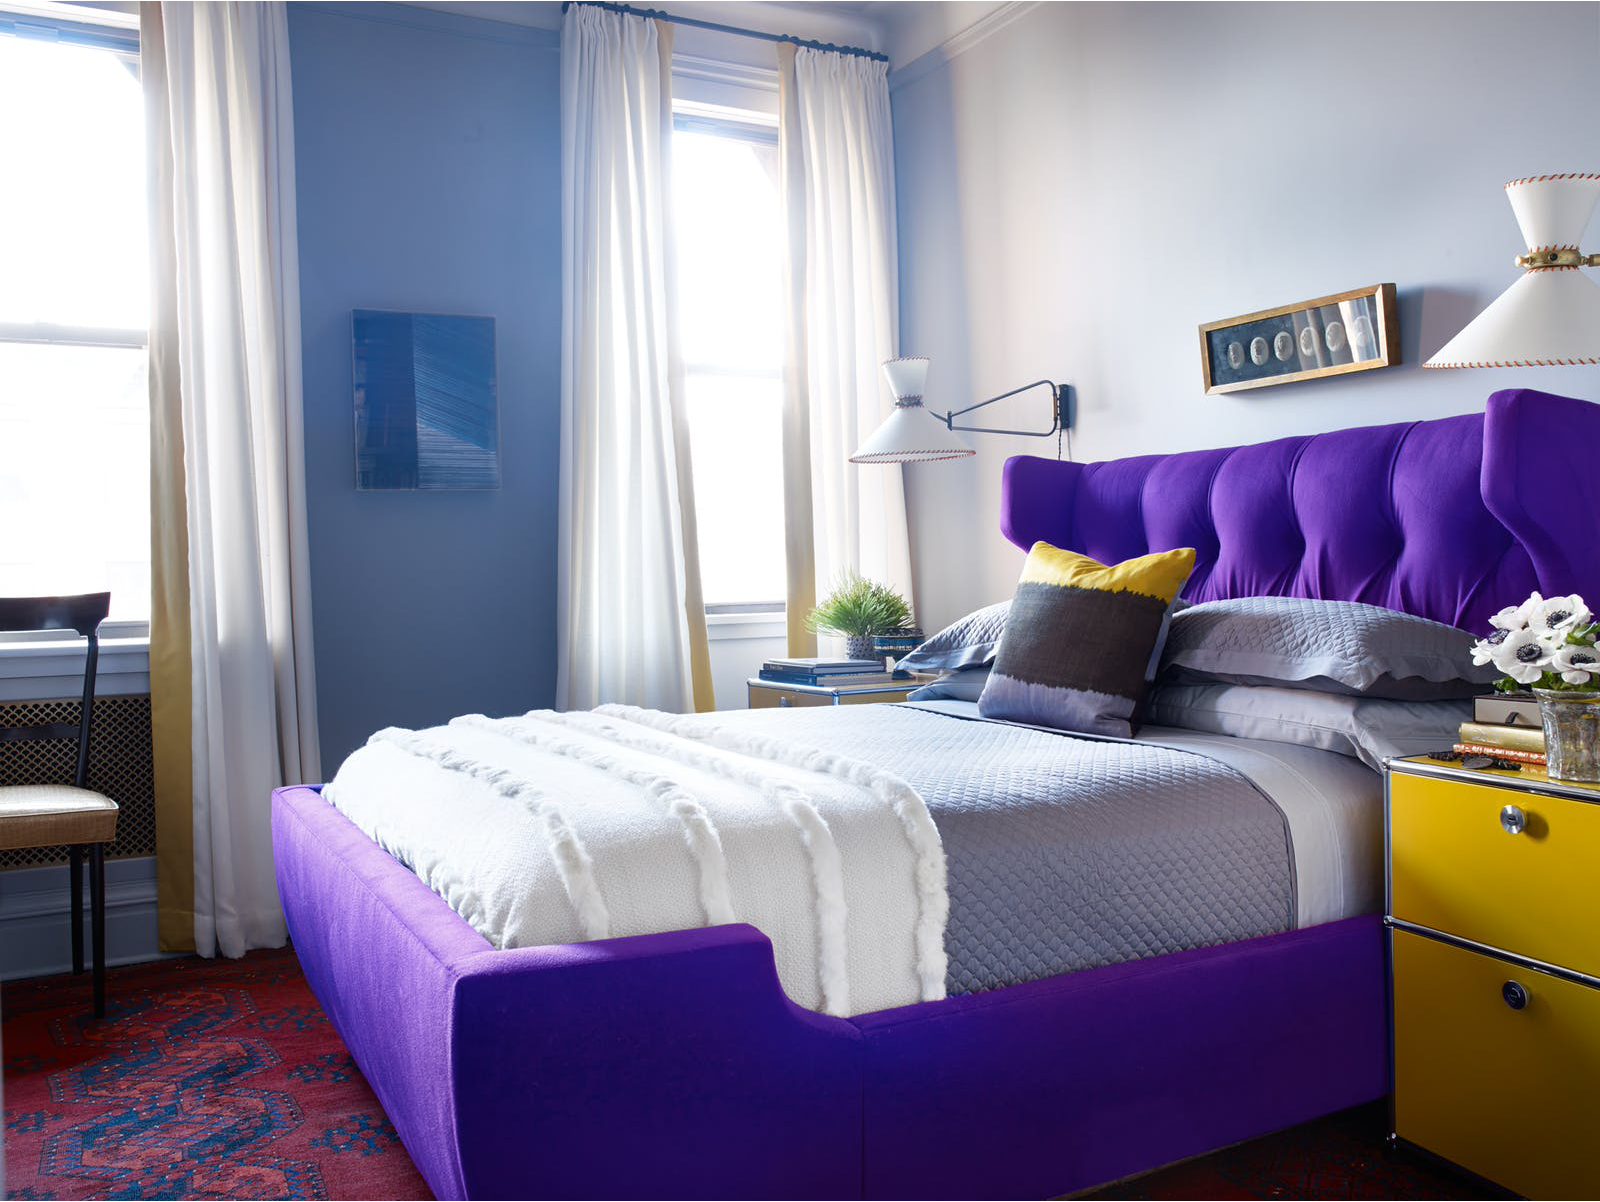 Room The Color Trick That Livens Up